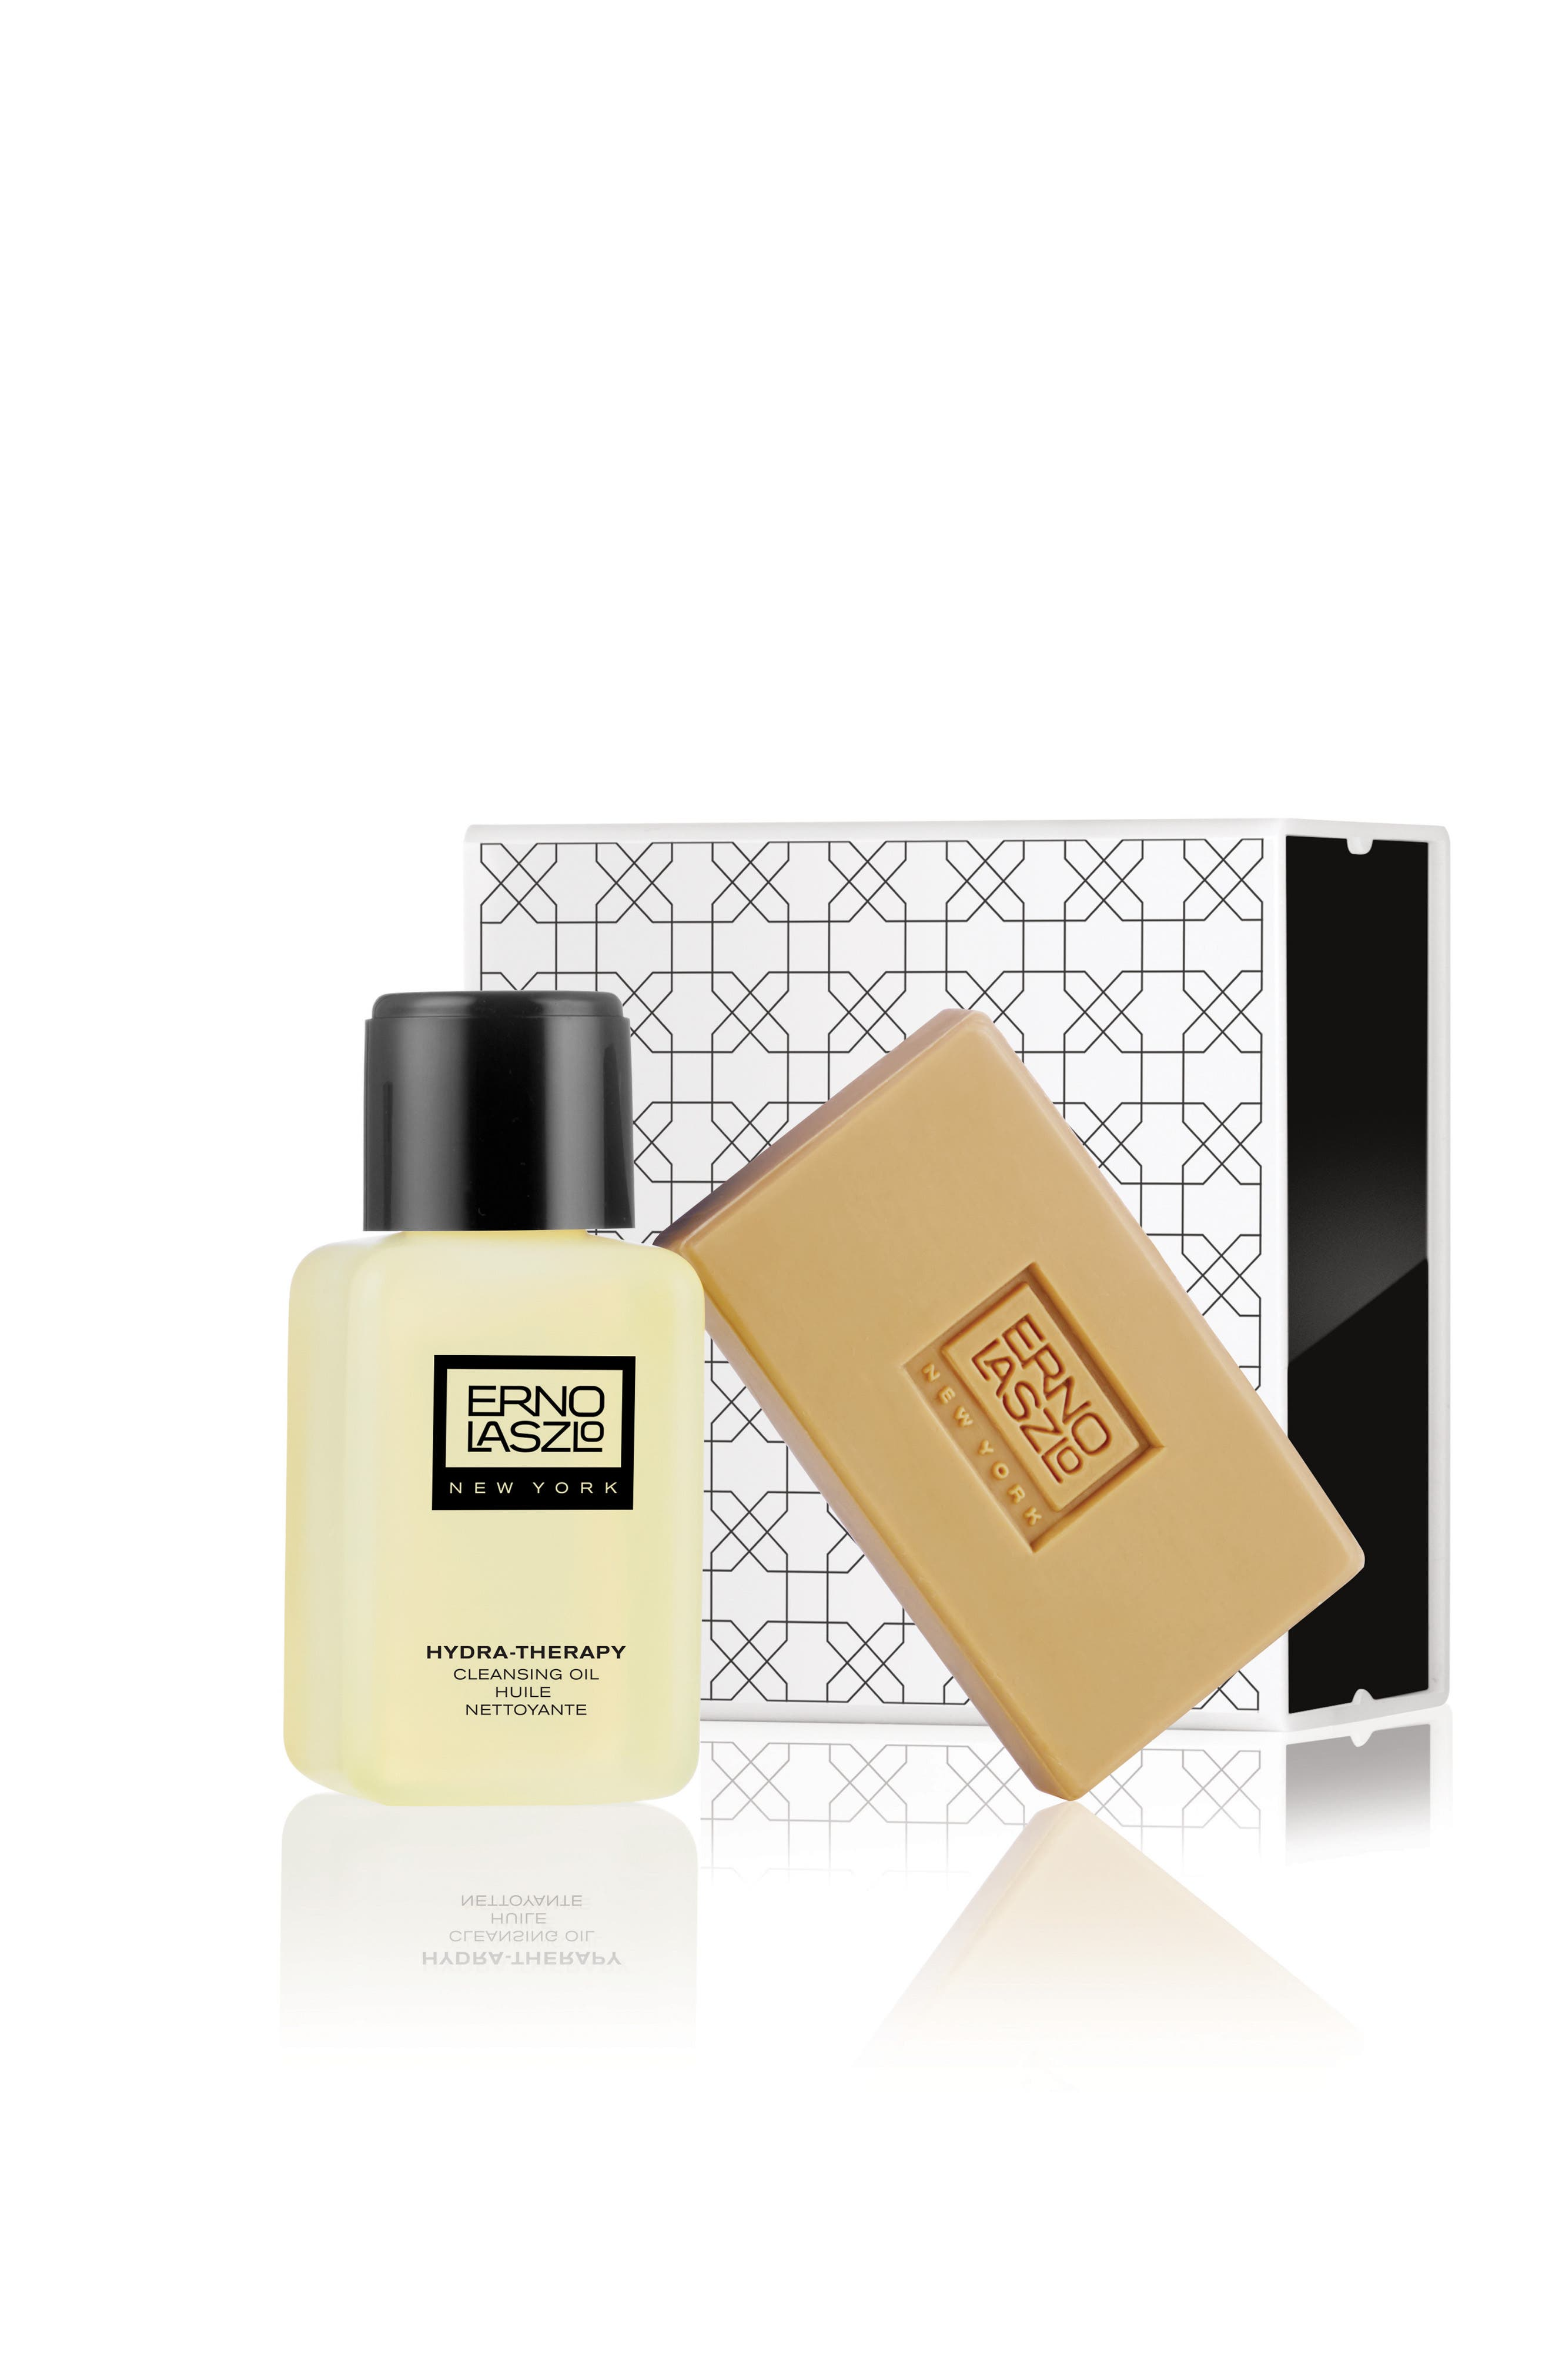 ERNO LASZLO Hydra-Therapy Double Cleanse Travel Set, Main, color, NO COLOR